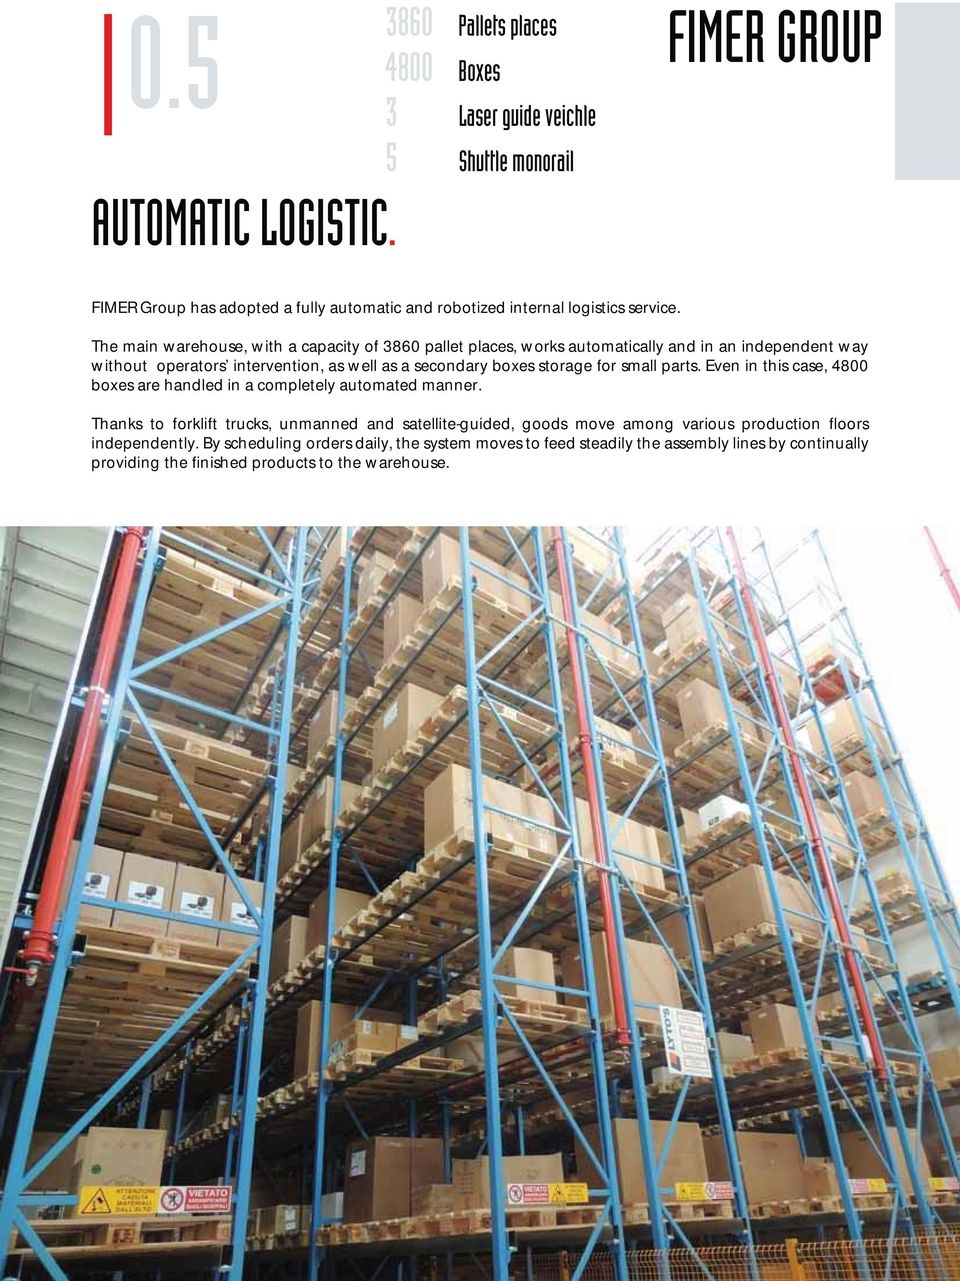 The main warehouse, with a capacity of 3860 pallet places, works automatically and in an independent way without operators intervention, as well as a secondary boxes storage for